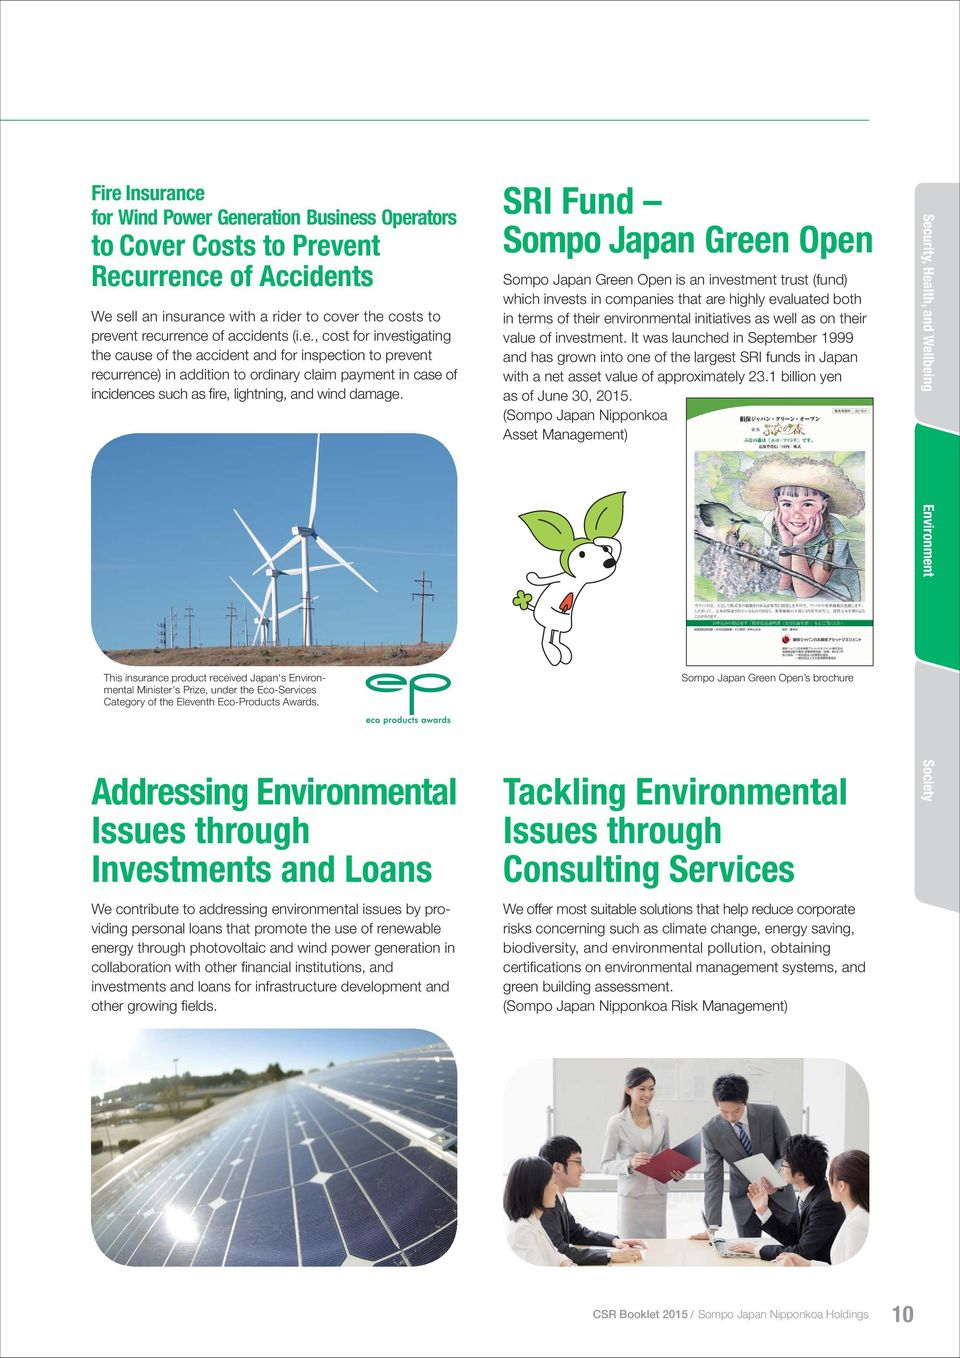 SRI Fund Sompo JapanGreen Open Sompo Japan Green Open is an investment trust (fund) which invests in companies that are highly evaluated both in terms of their environmental initiatives as well as on